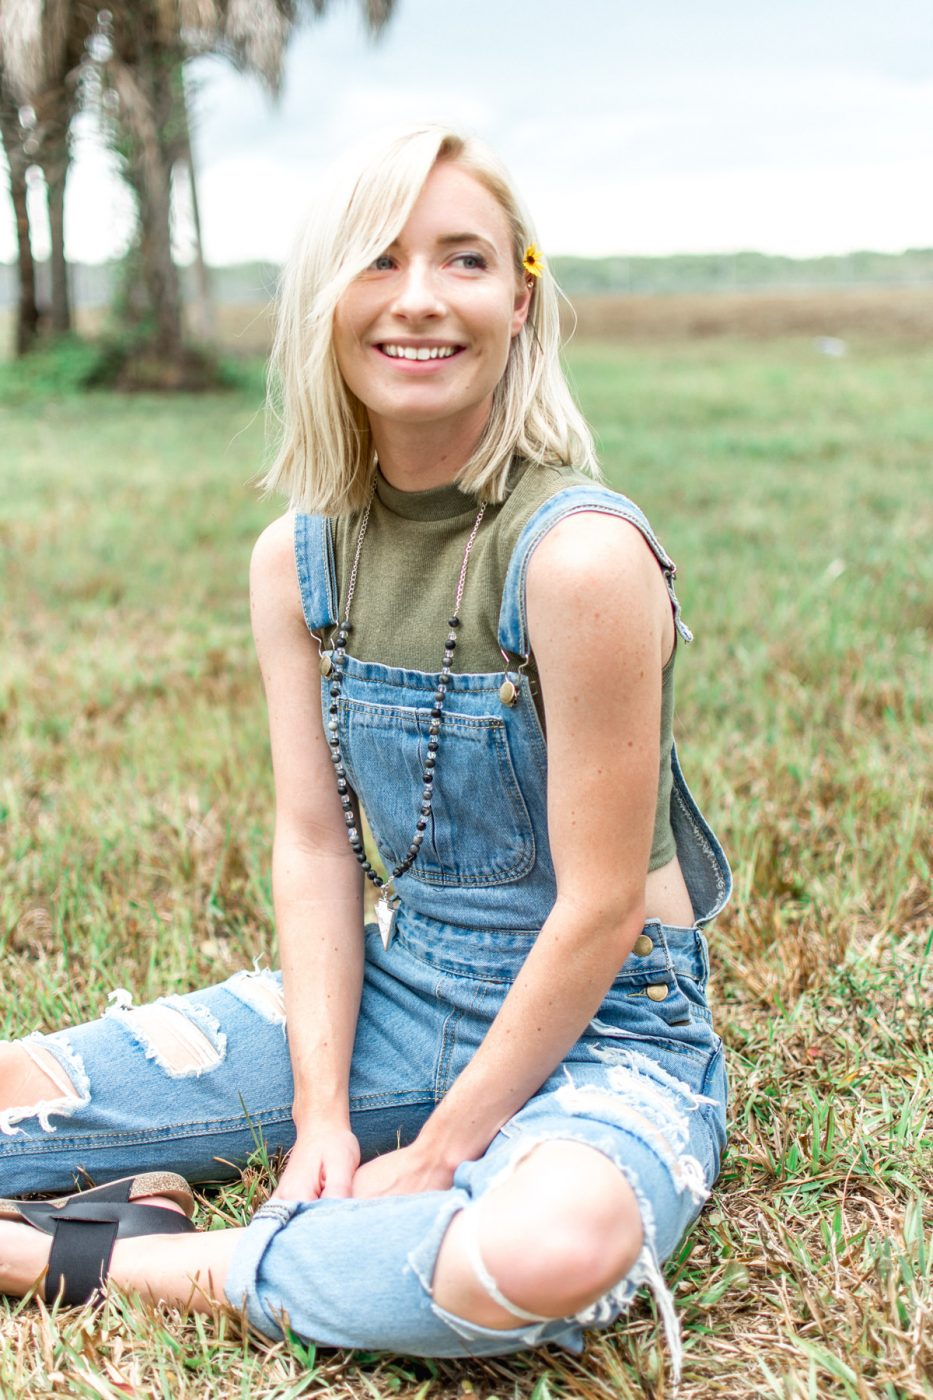 Denim overalls worn by Jenny Bess summer style